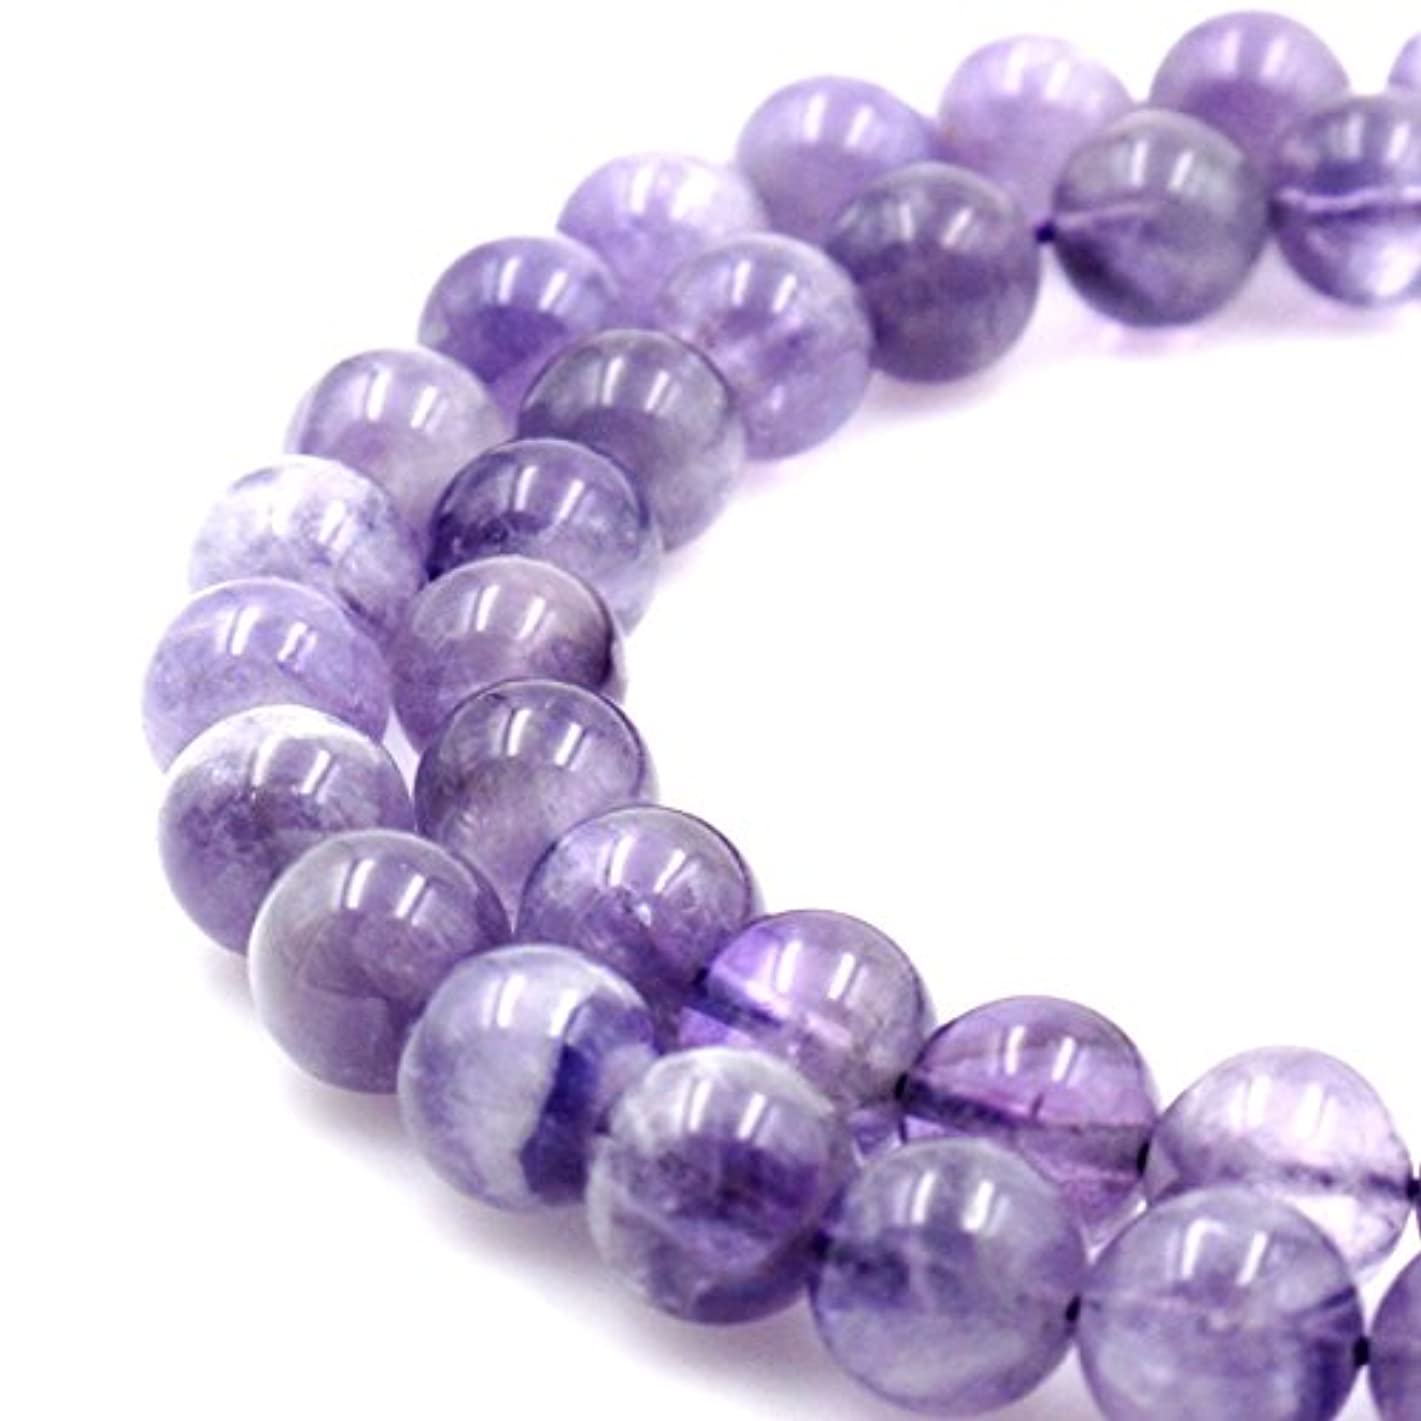 BRCbeads Natural Light Purple Amethyst Gemstone Round Loose Beads 6mm Approxi 15.5 inch 60pcs 1 Strand per Bag for Jewelry Making